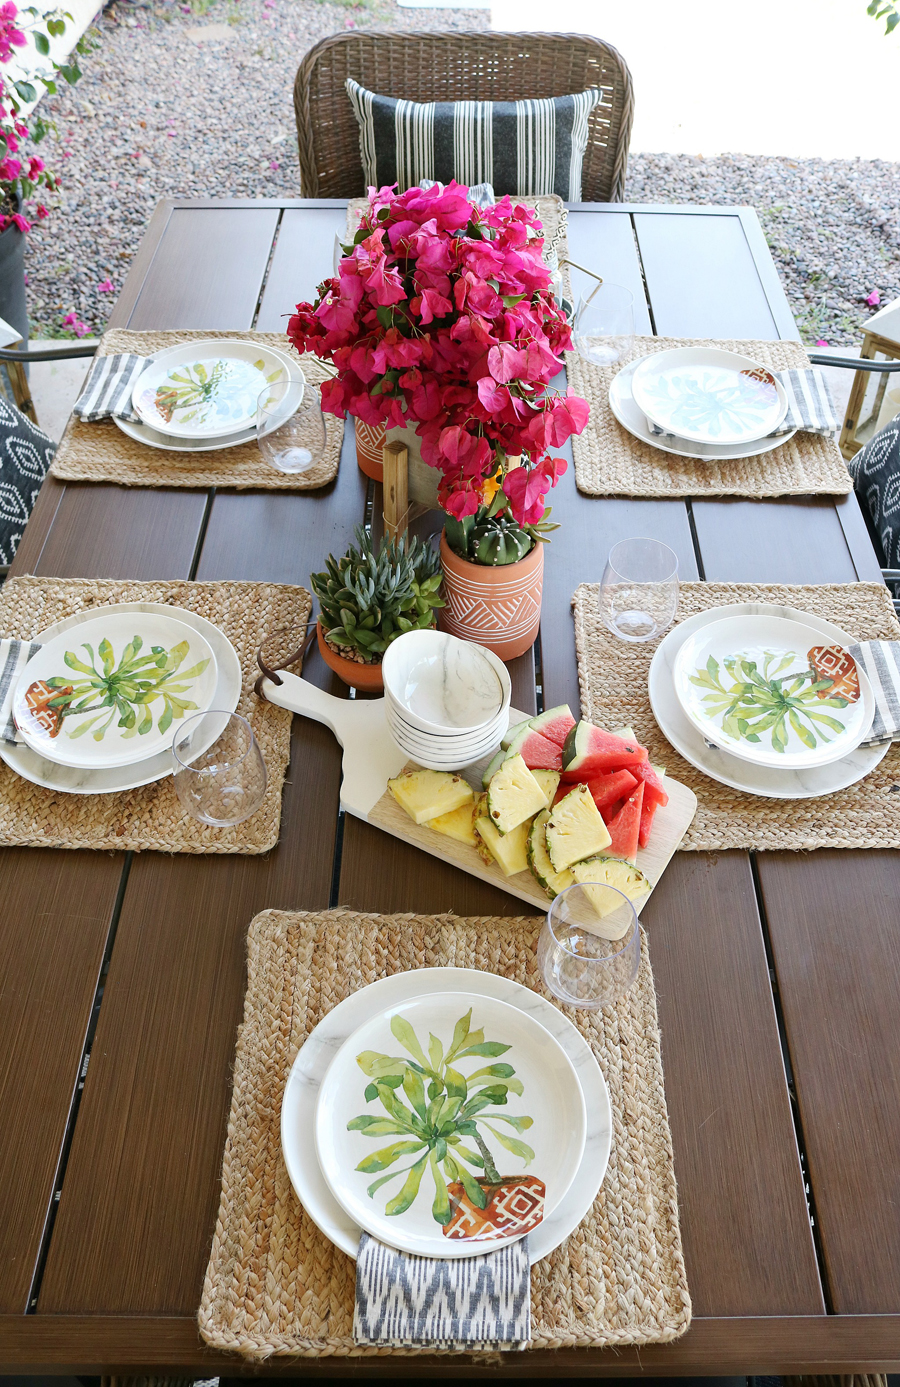 Modern farmhouse outdoor entertaining ideas.